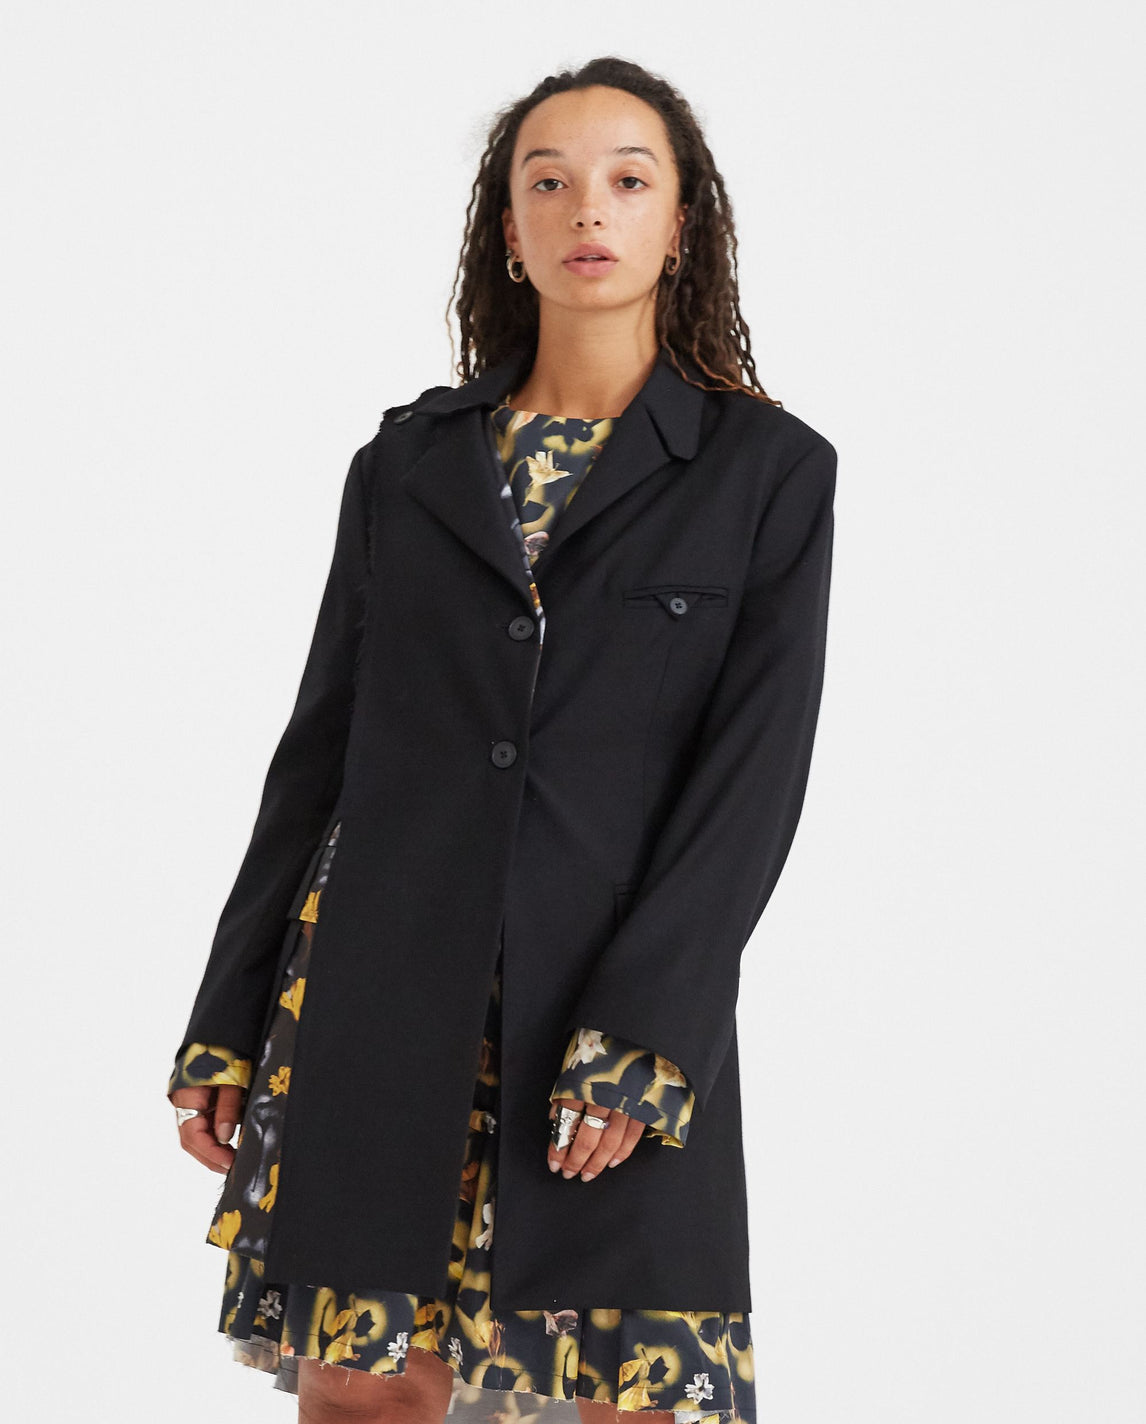 Raw Edged Removable Panel Blazer Dress - Black WOMENS DELADA